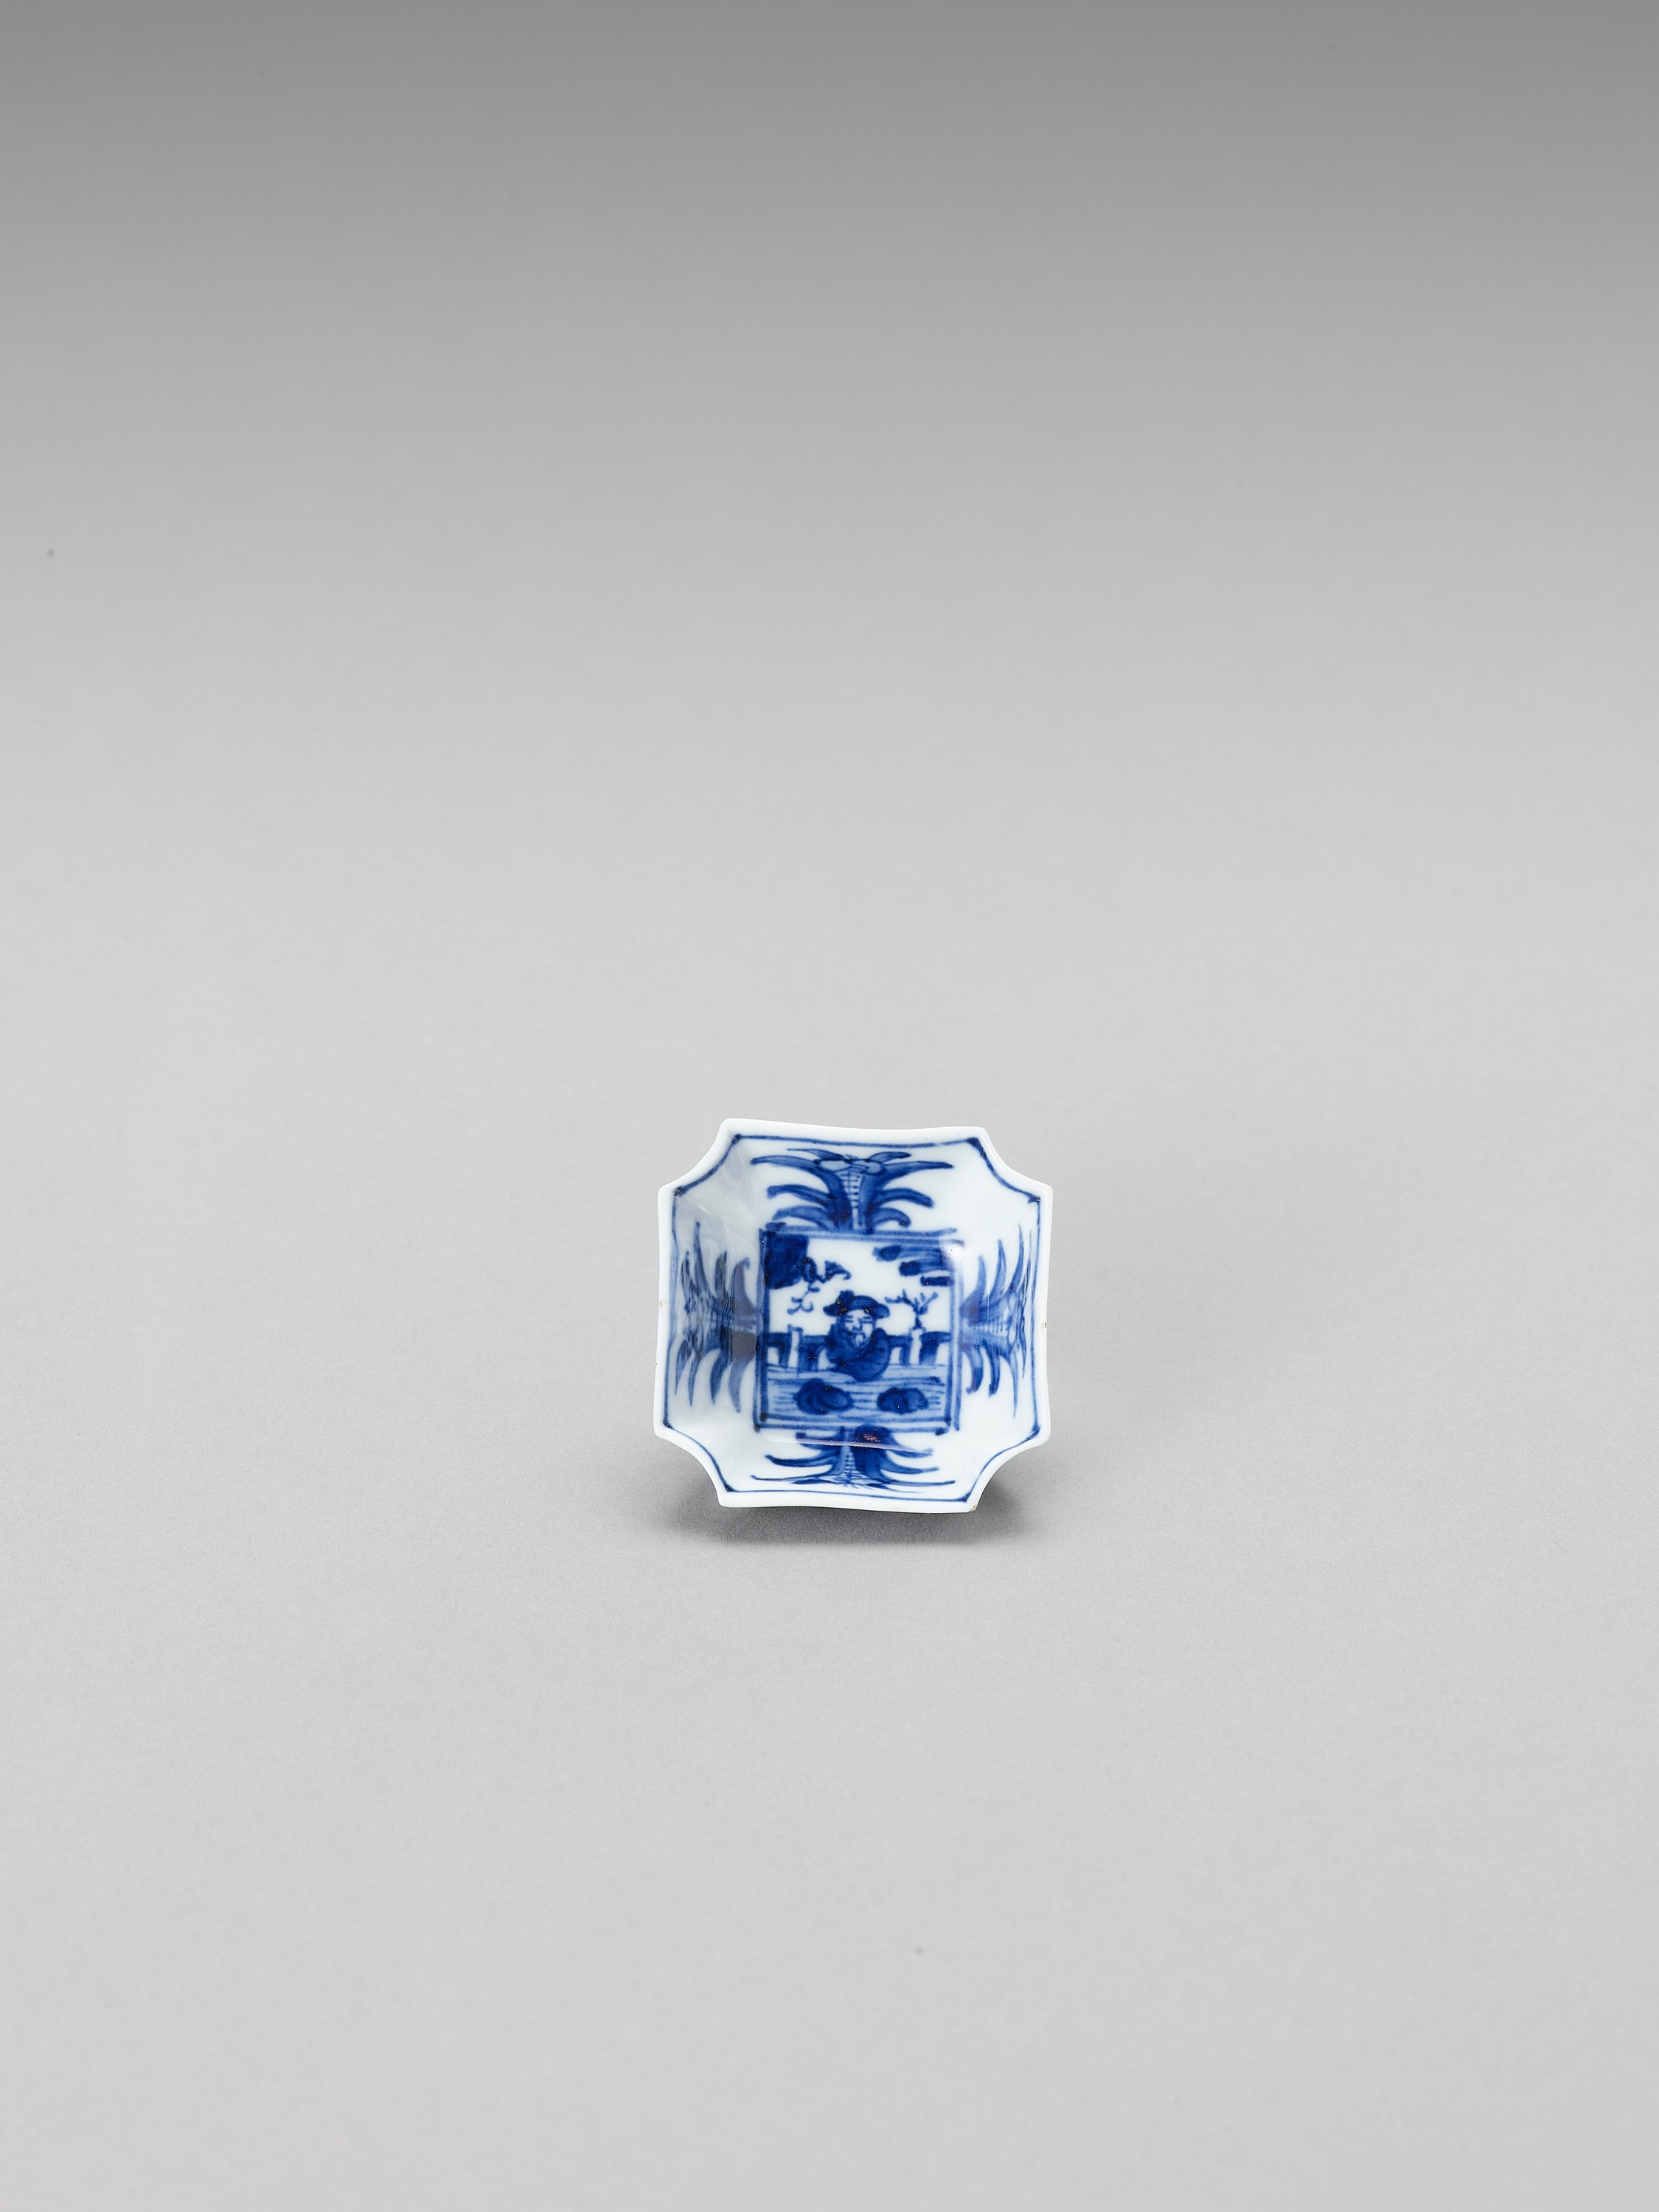 A SMALL BLUE AND WHITE PORCELAIN SAUCER - Image 2 of 5